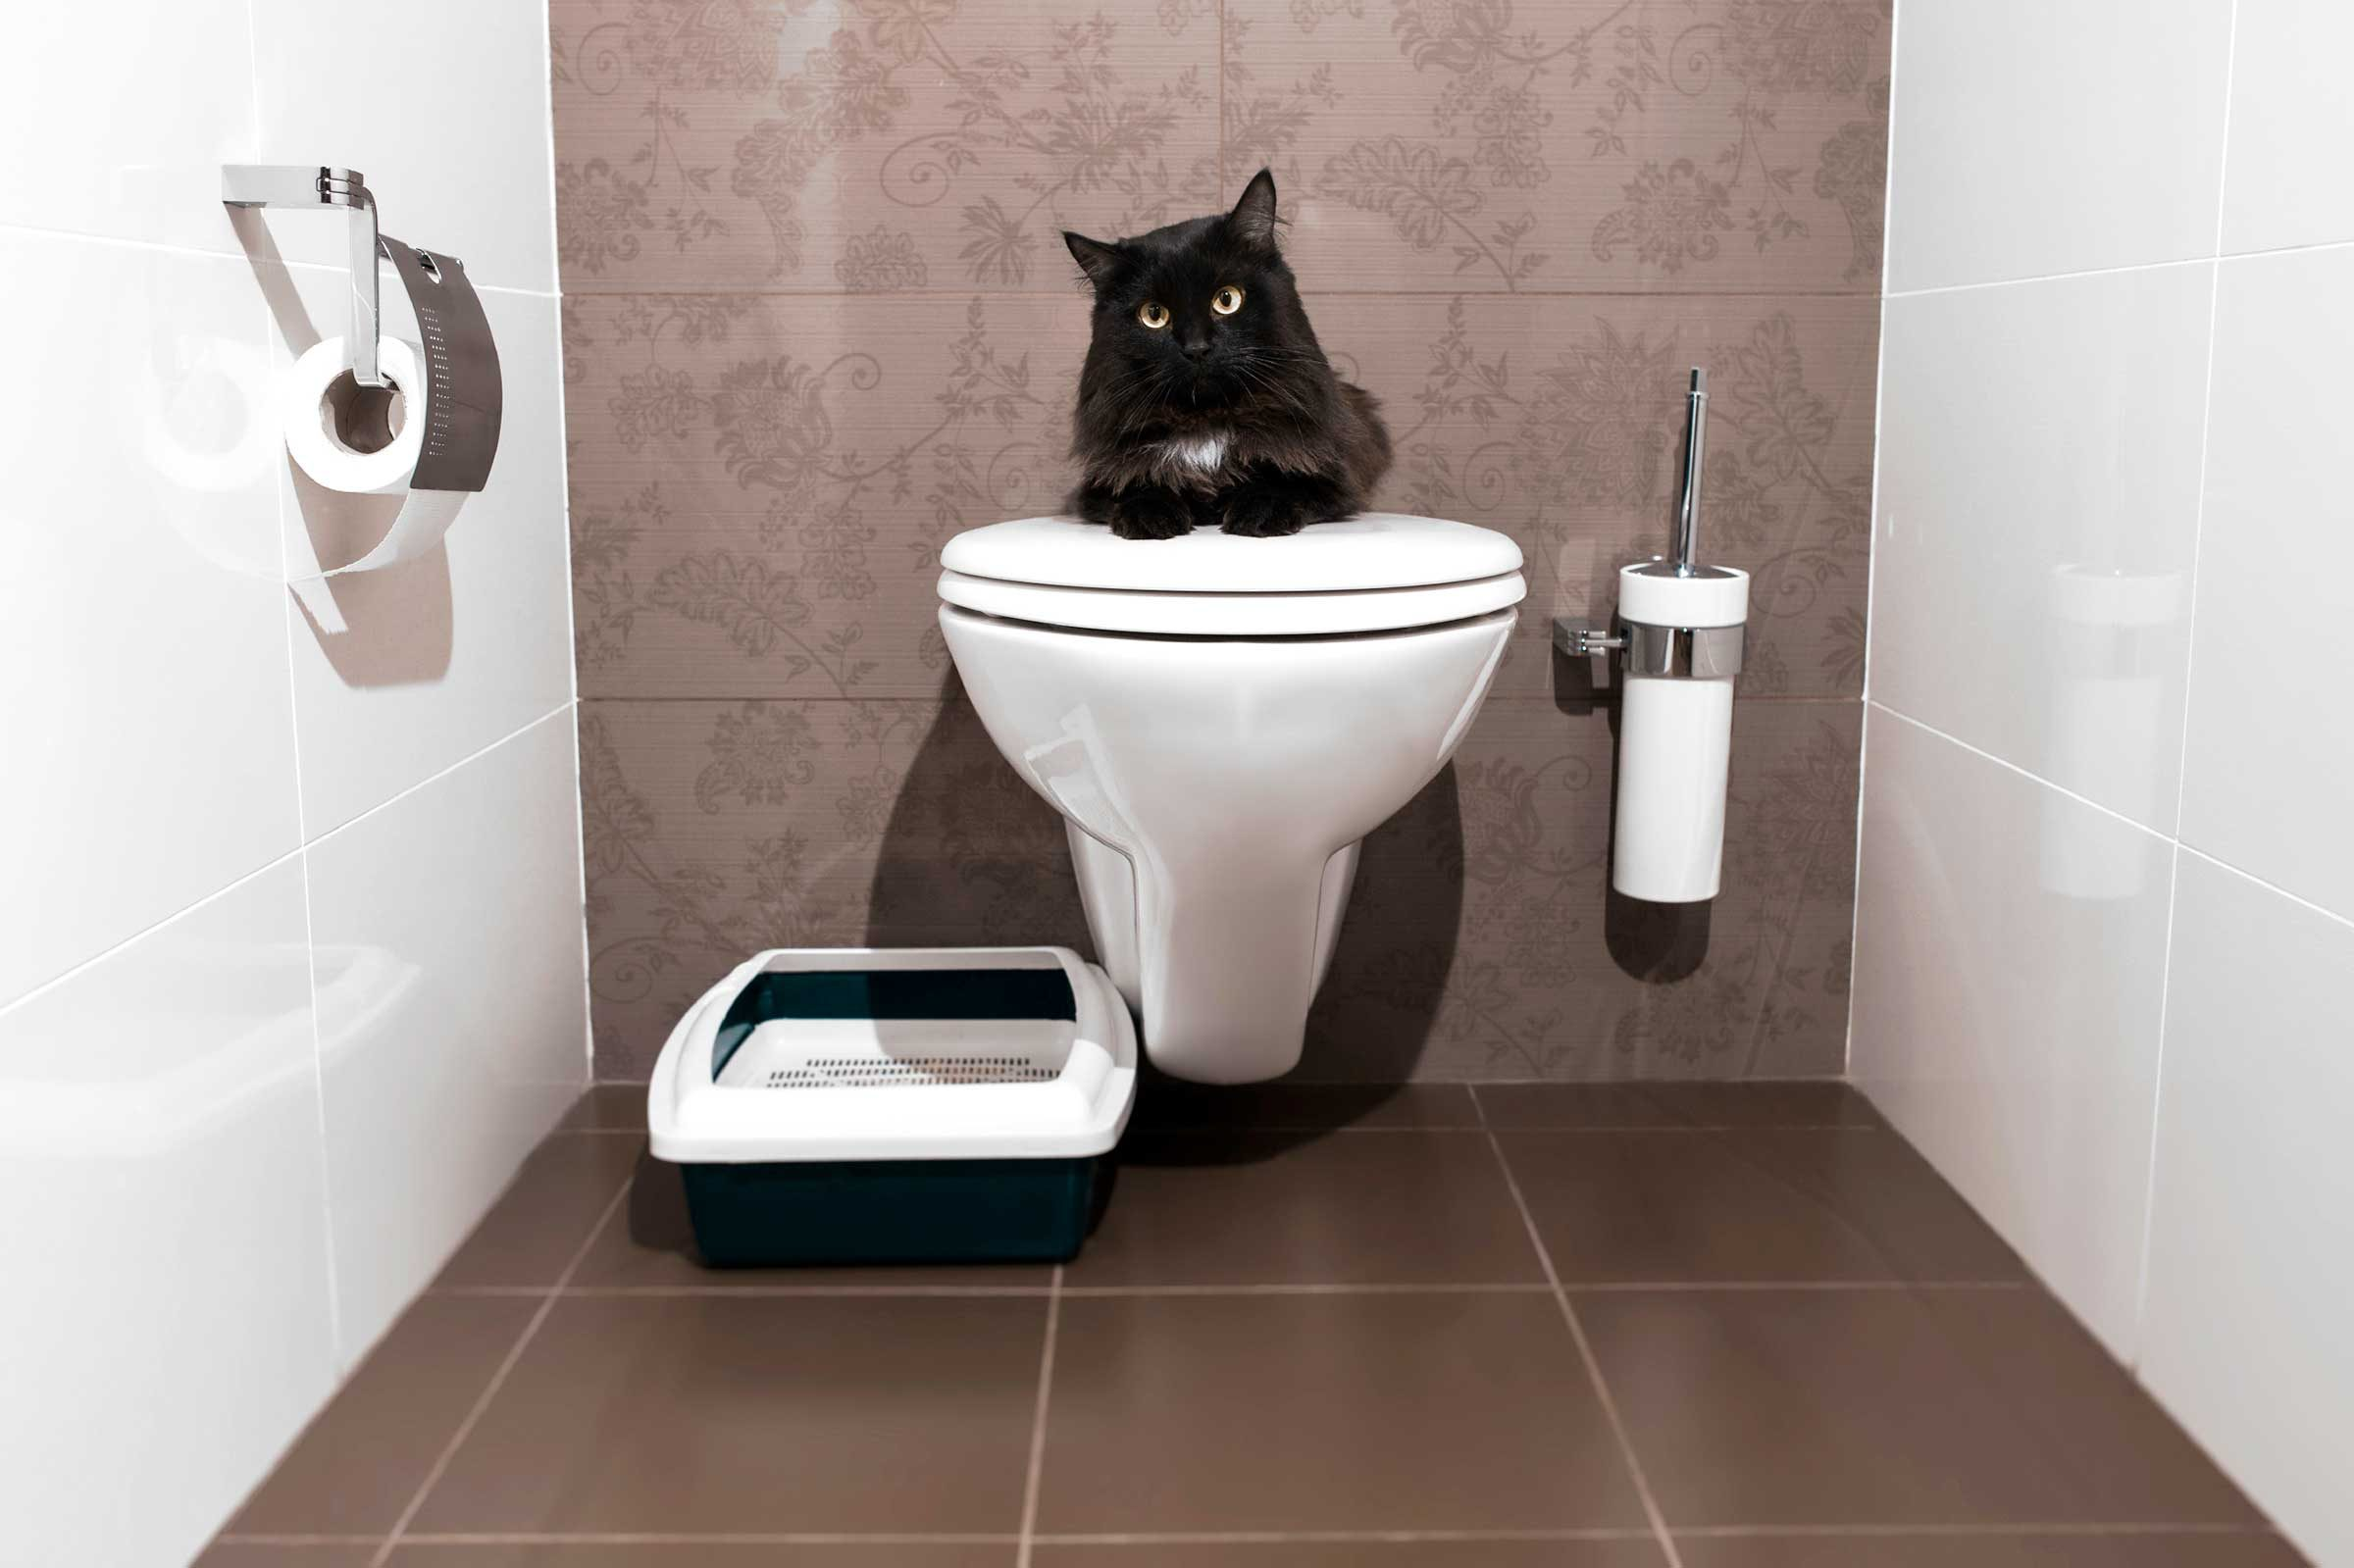 How to train a cat to: Use a toilet